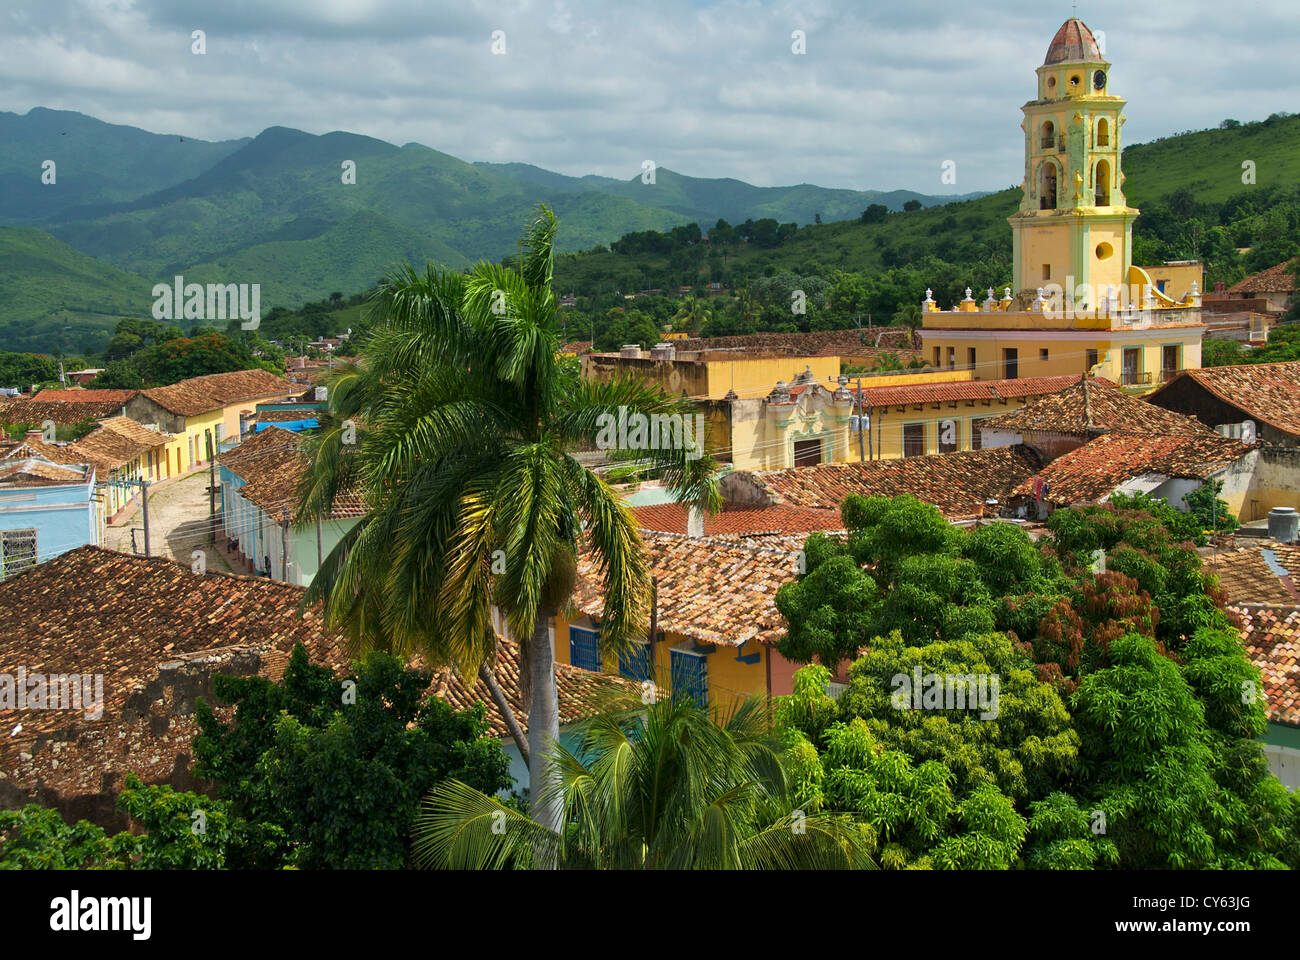 View over Trinidad - Stock Image